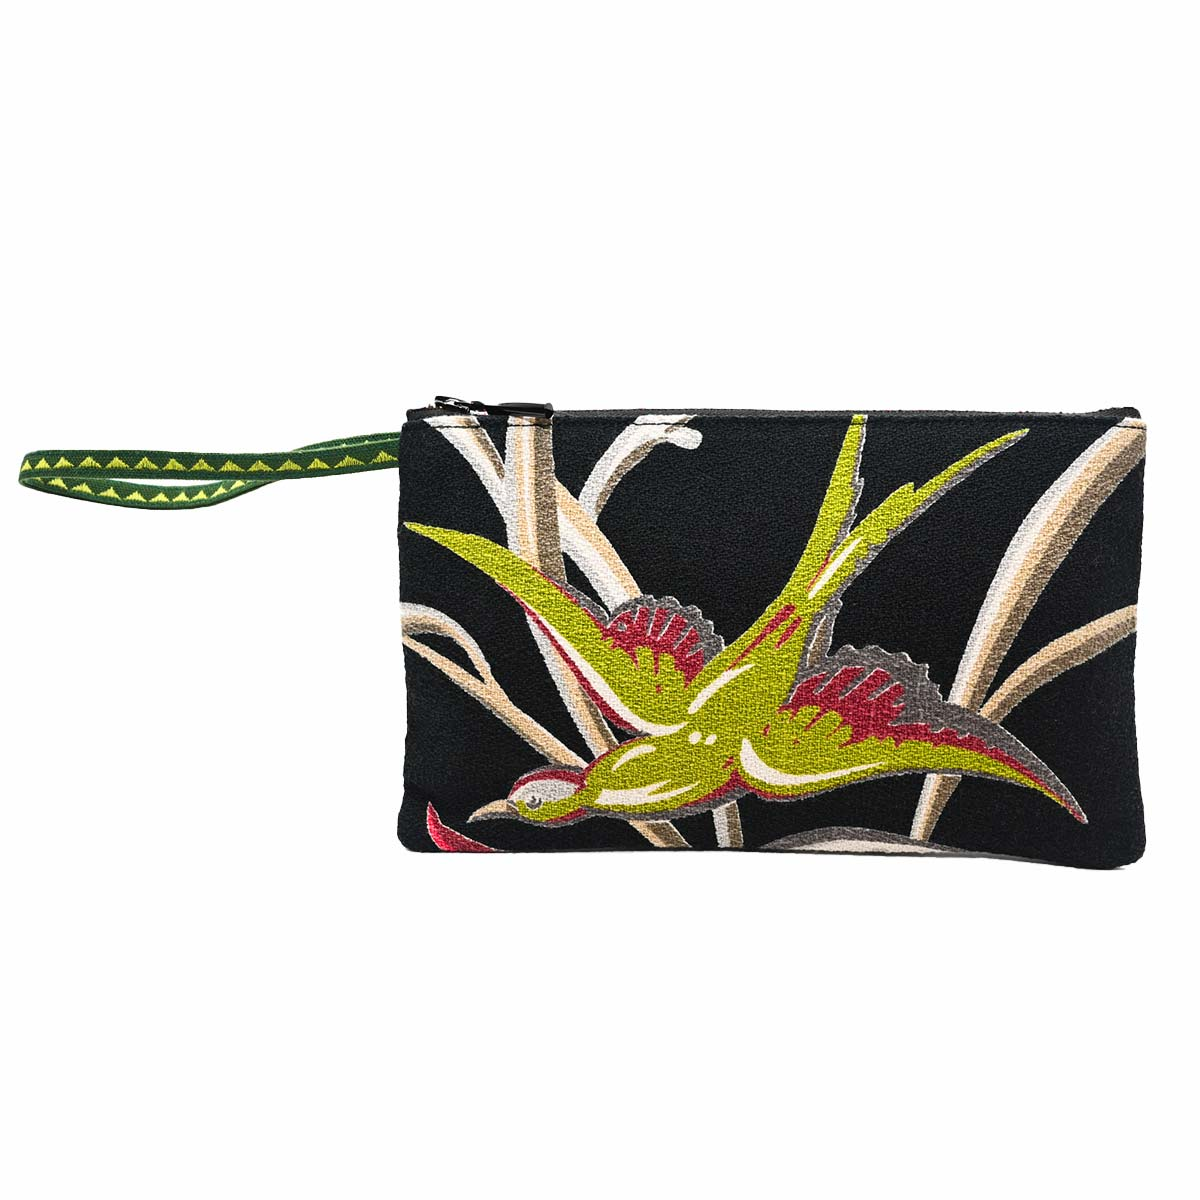 clutch bag bird motif mid century modern on black